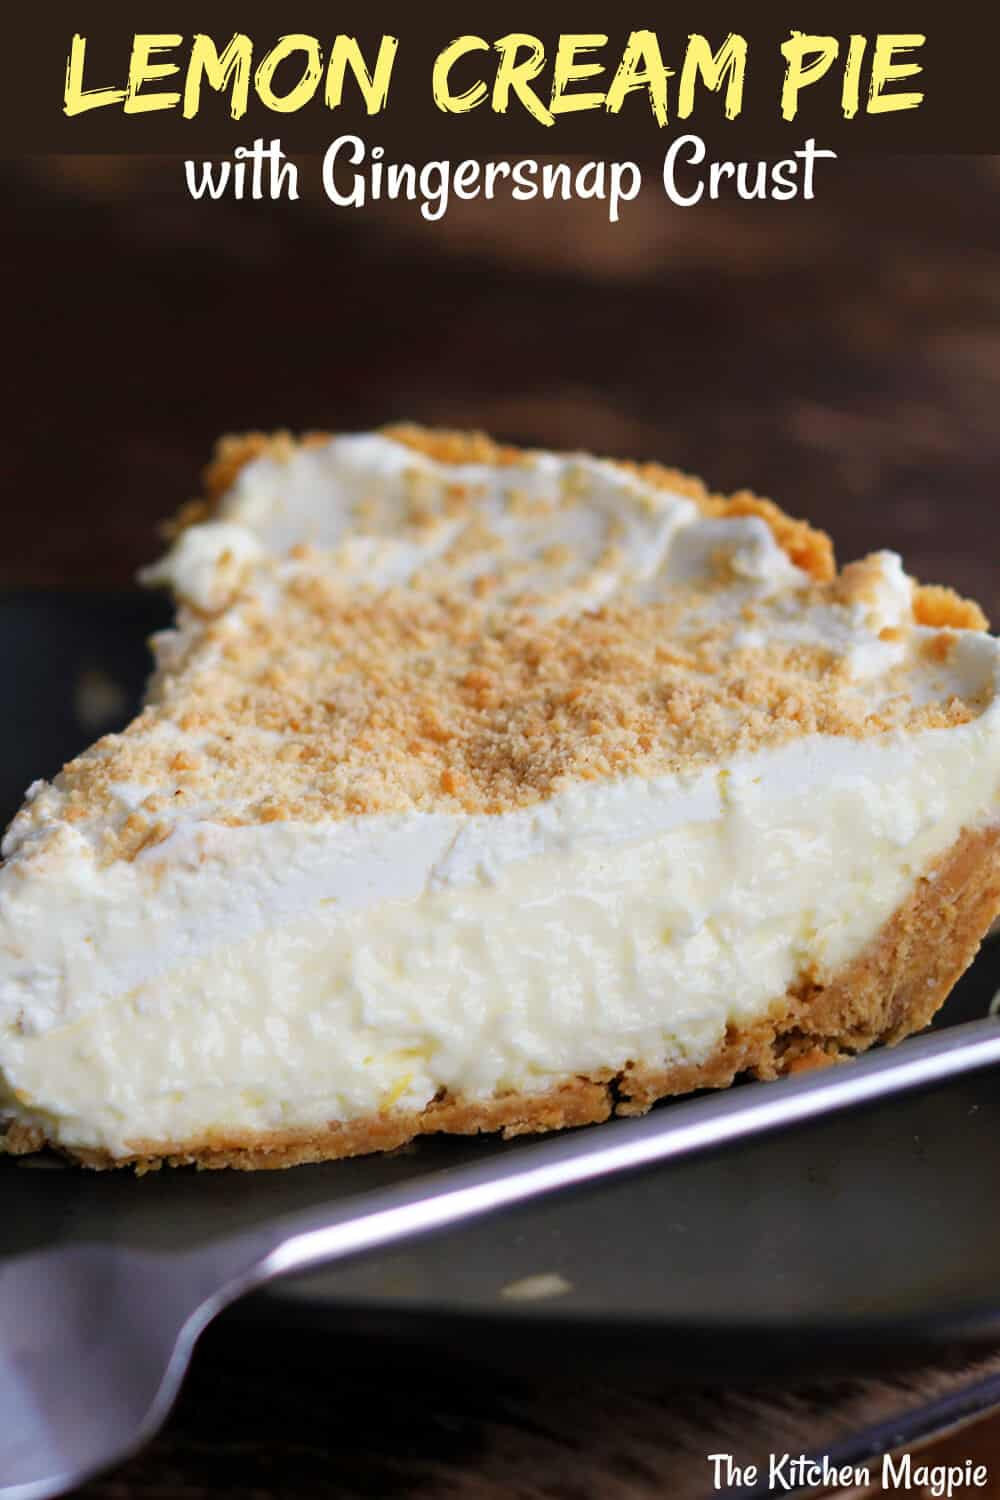 Lemon Cream Pie With Spice Cookie Crust is the perfect combination! Creamy lemony filling is paired with a snappy, spicy cookie crust! #lemon #pie